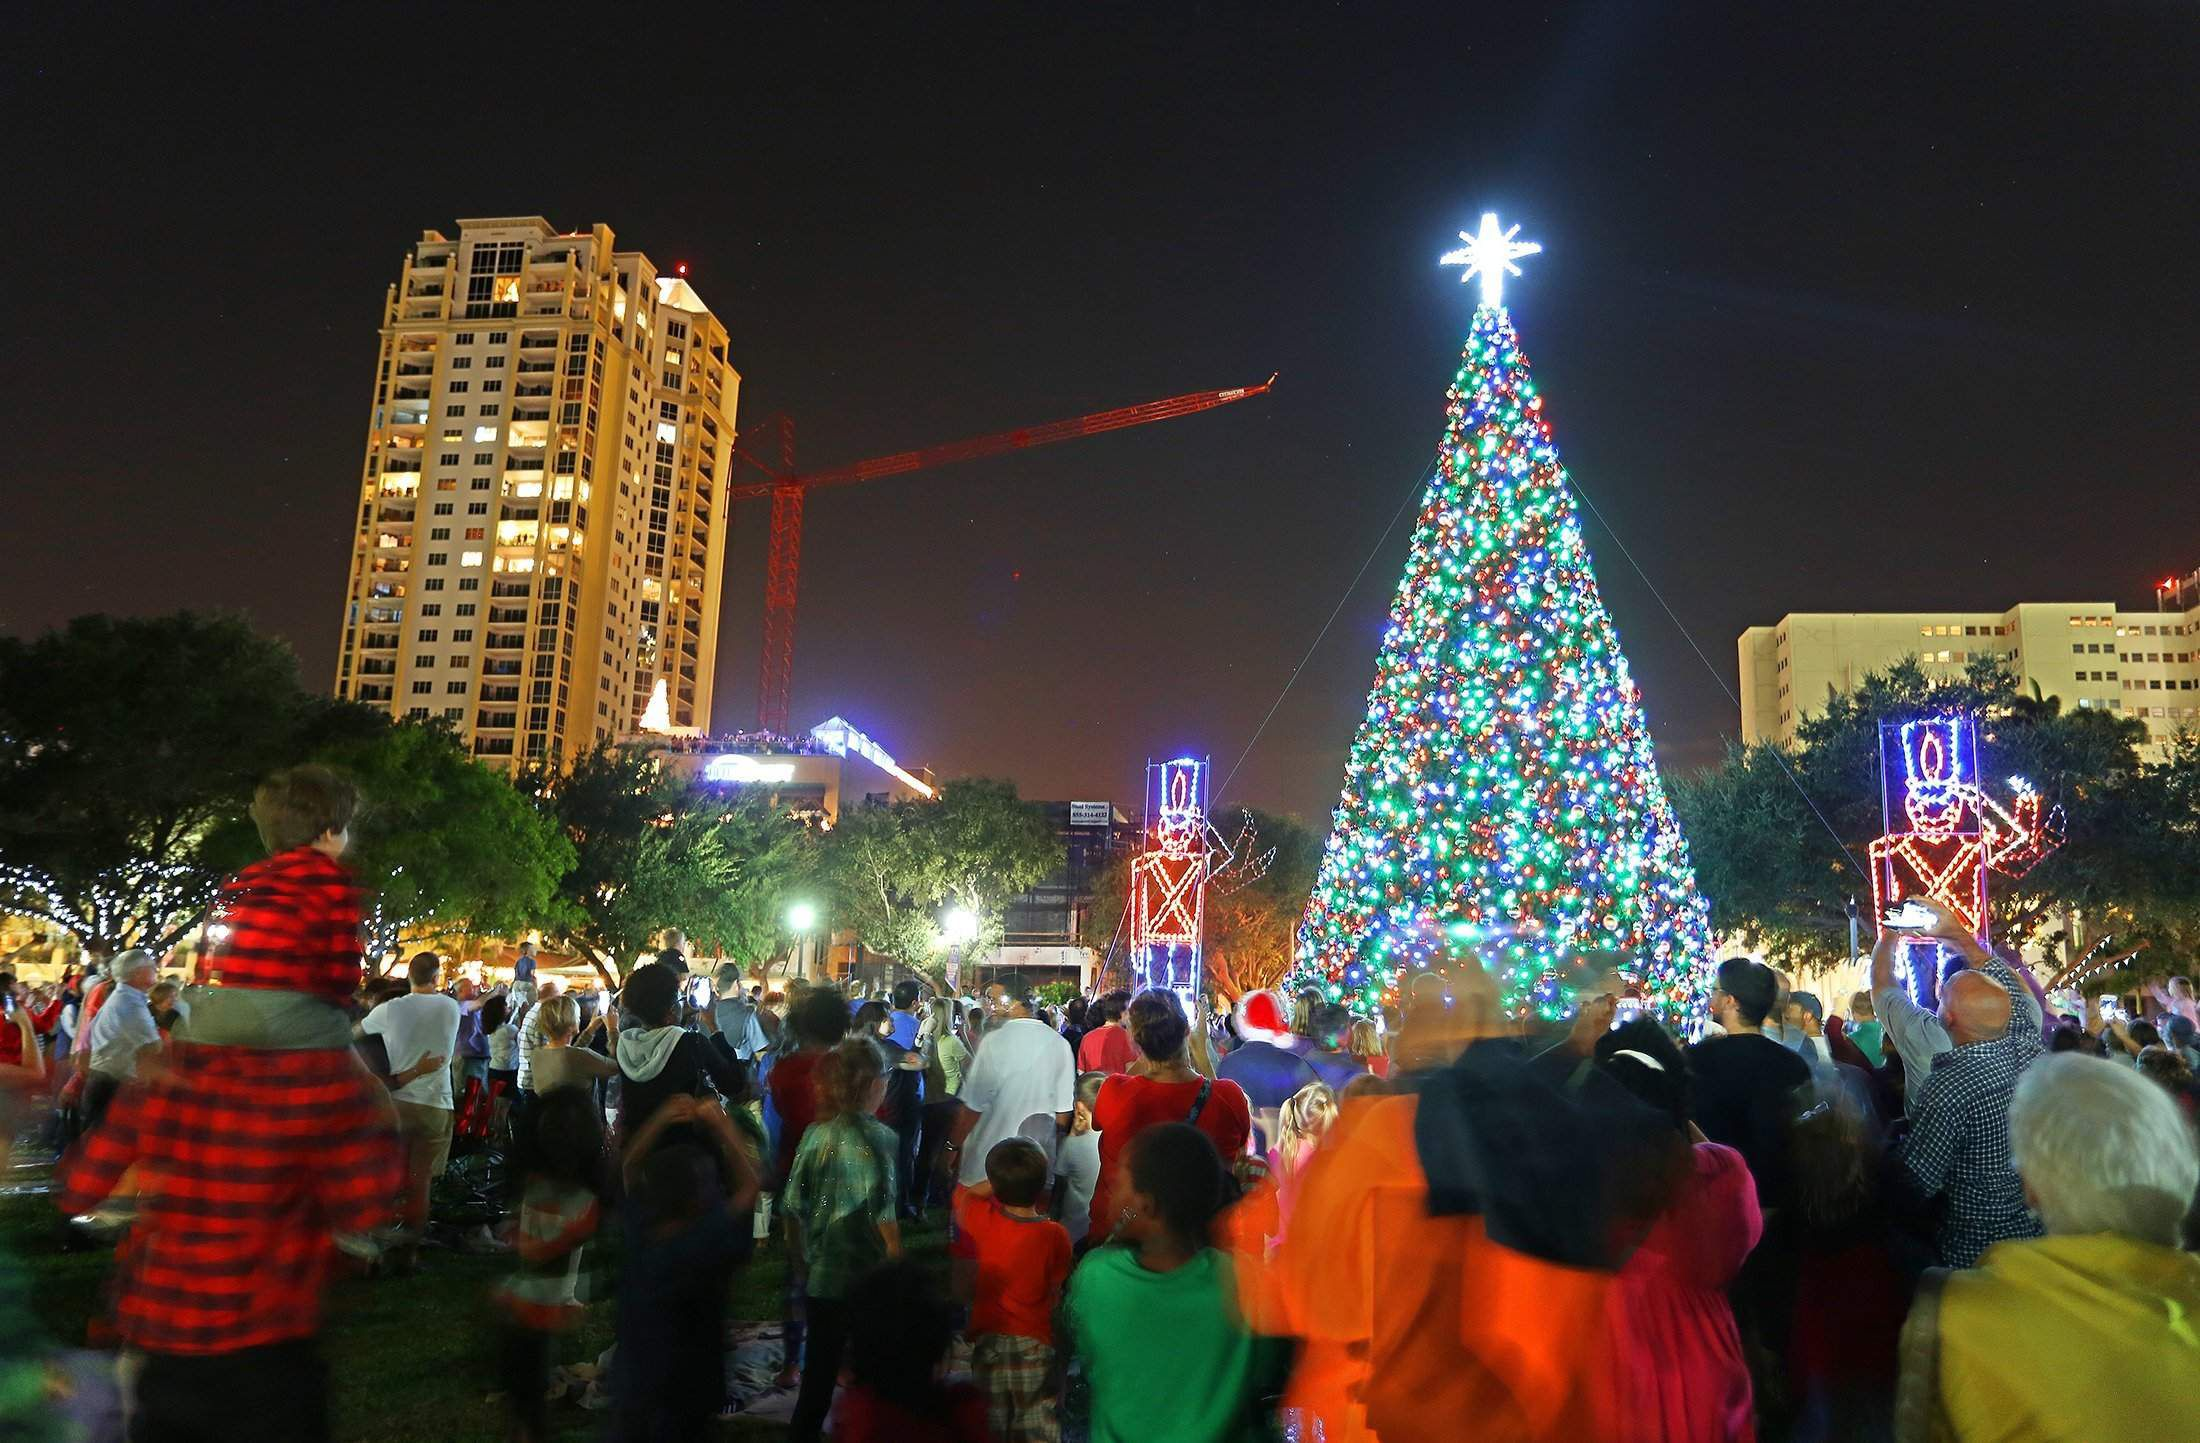 Kenneth City Fl Christmas Parade 2020 Where to find Christmas lights in Tampa Bay